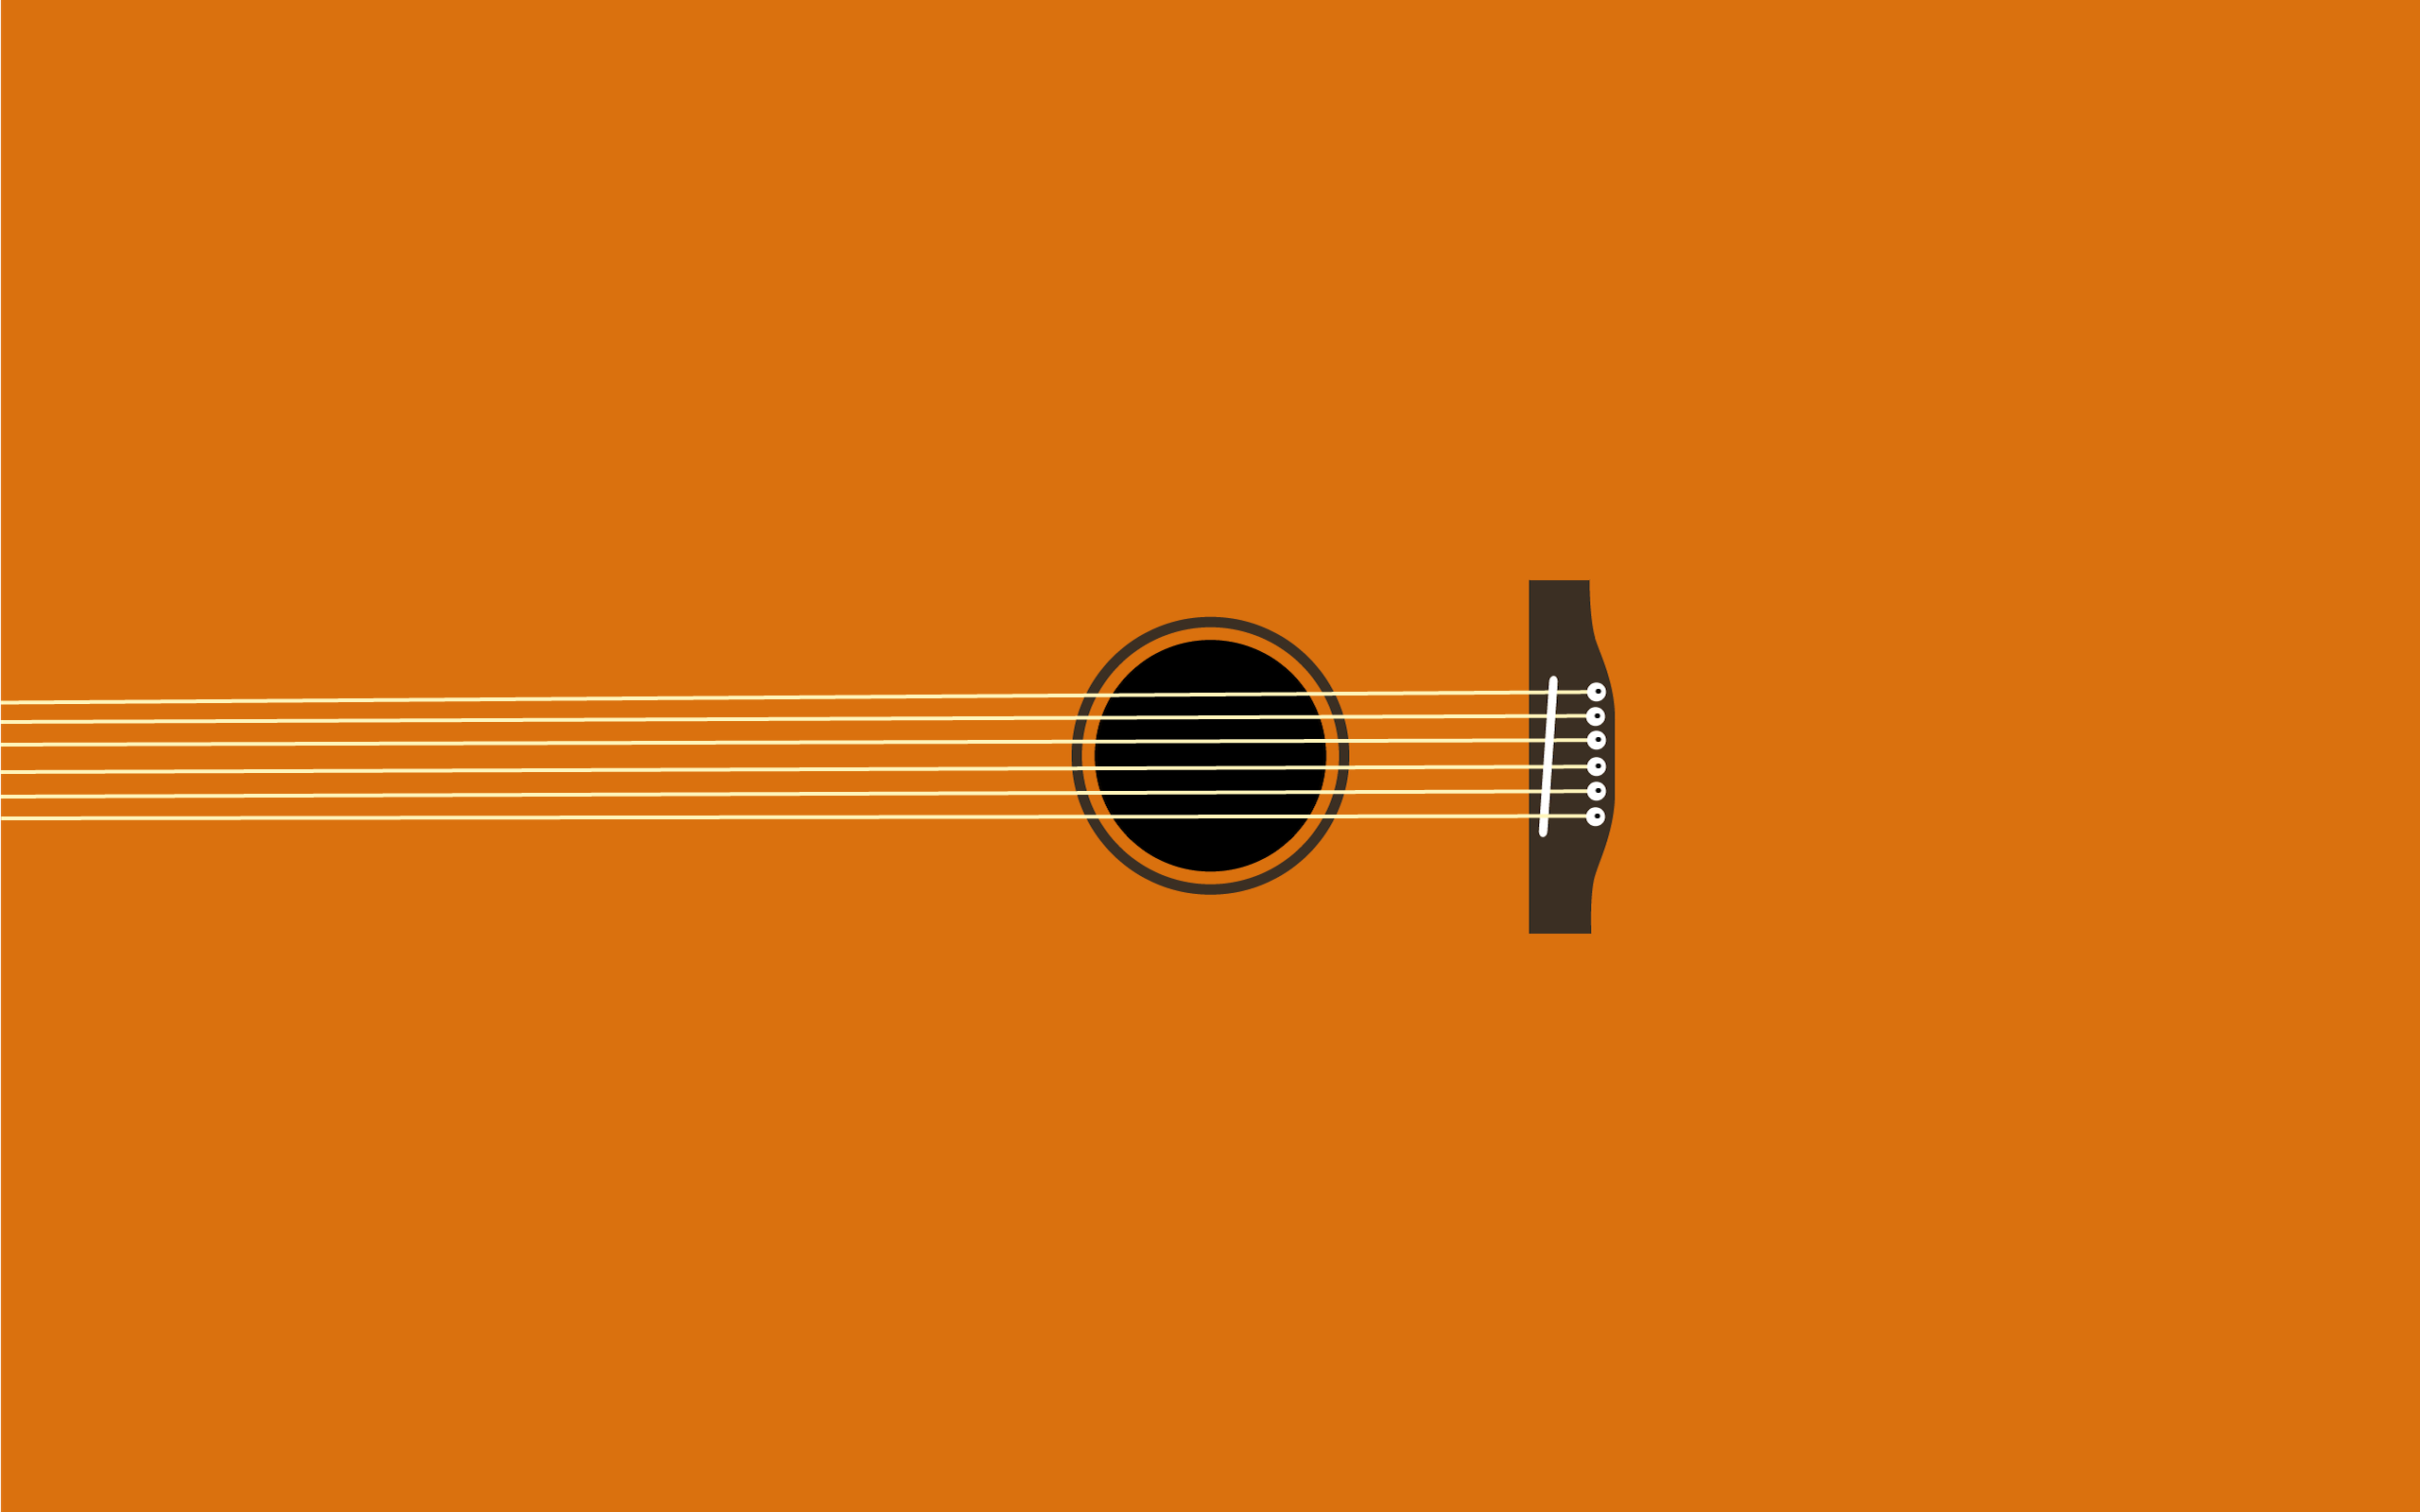 Free Acoustic Wallpaper